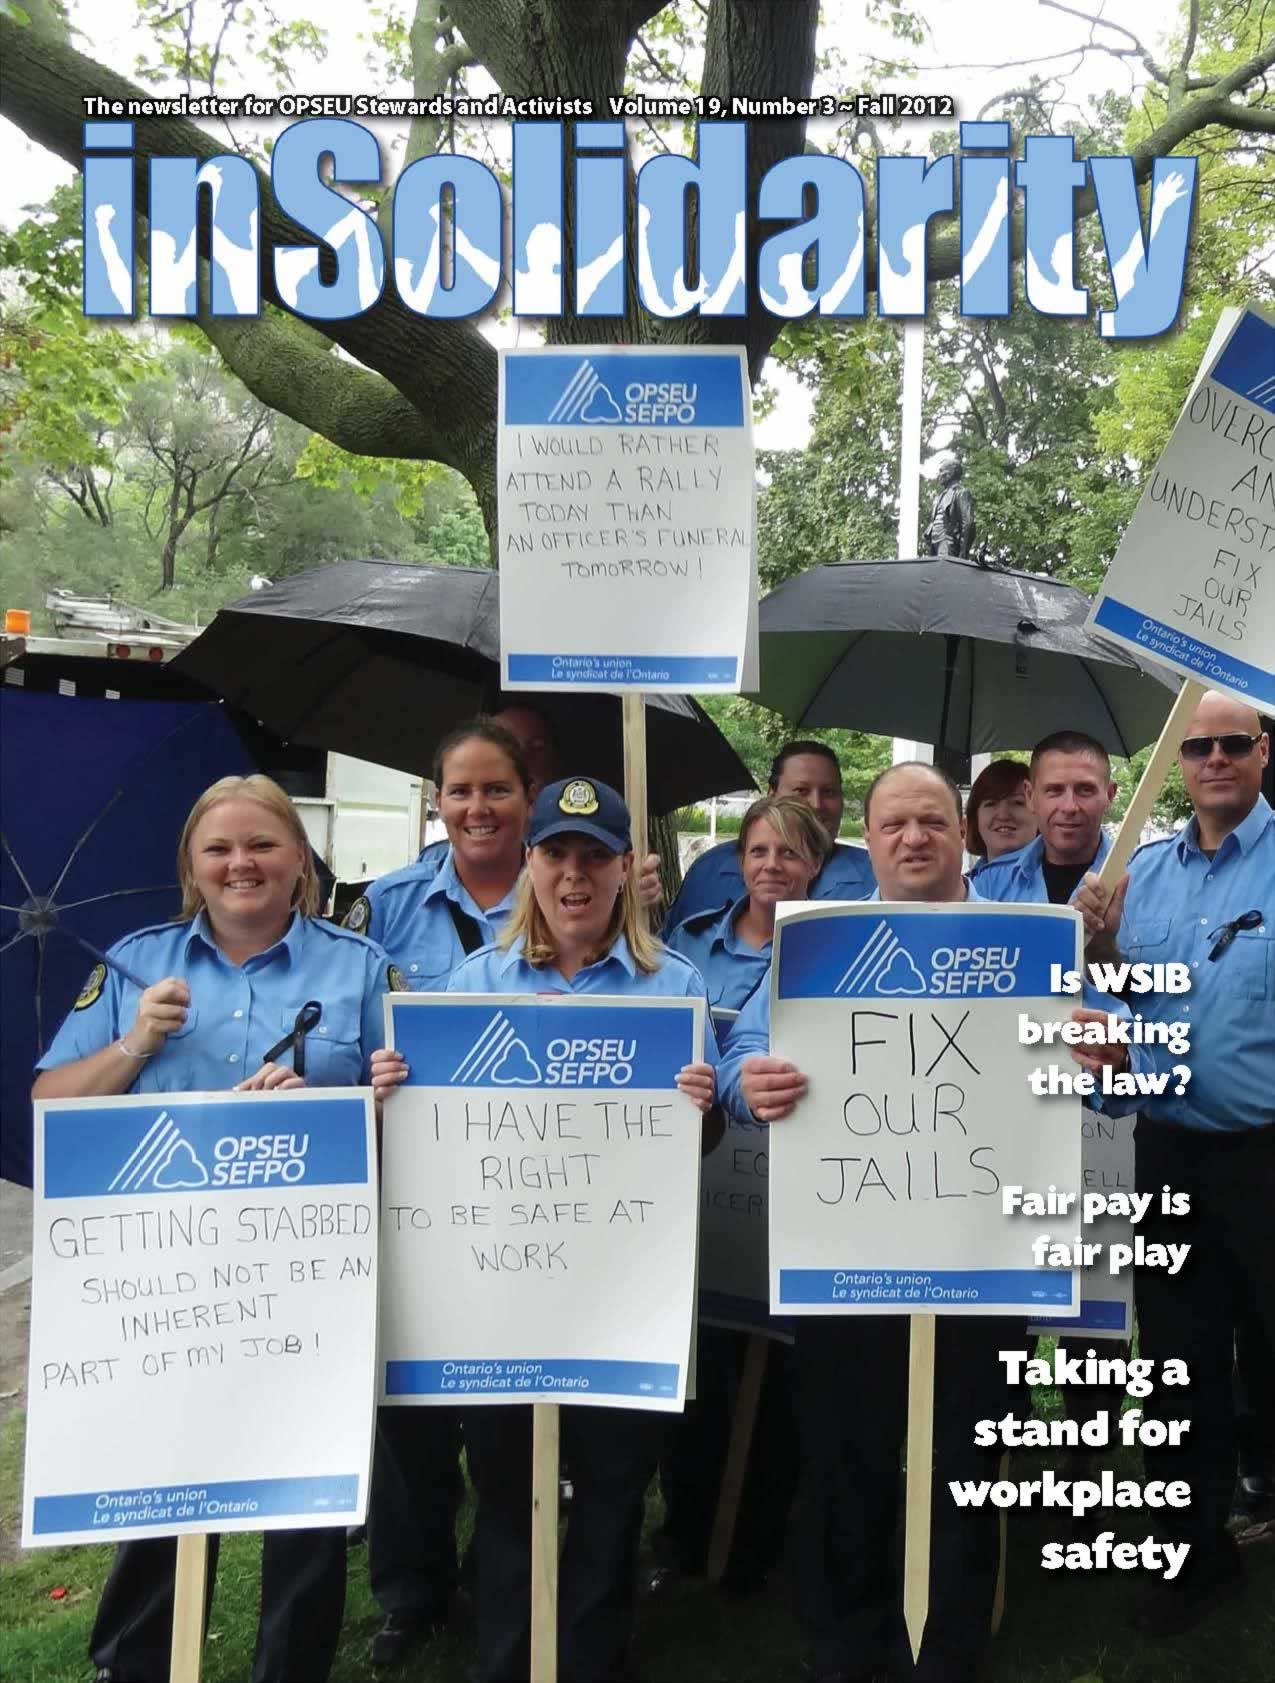 In Solidarity, Fall 2012 cover. Correctional officers holding up signs that say: Fix our jails